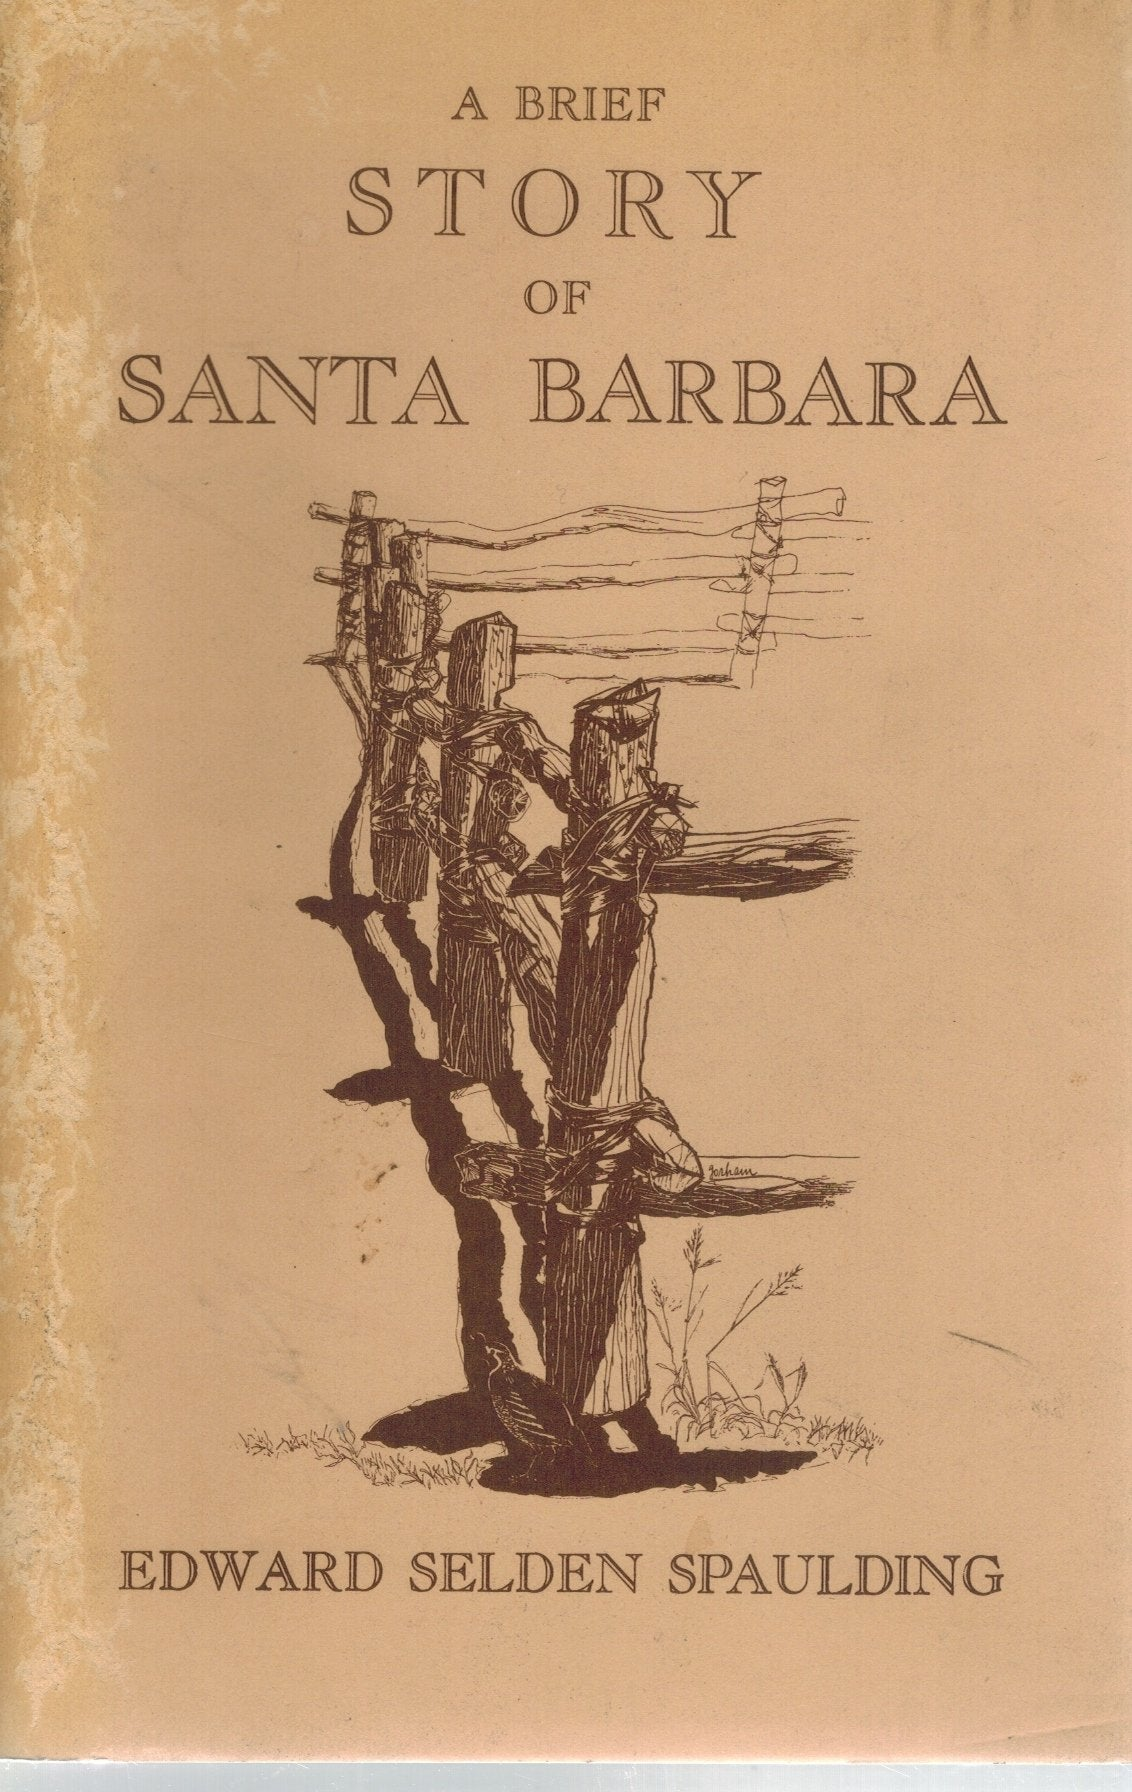 A BRIEF STORY OF SANTA BARBARA  by Spaulding, Edward Selden